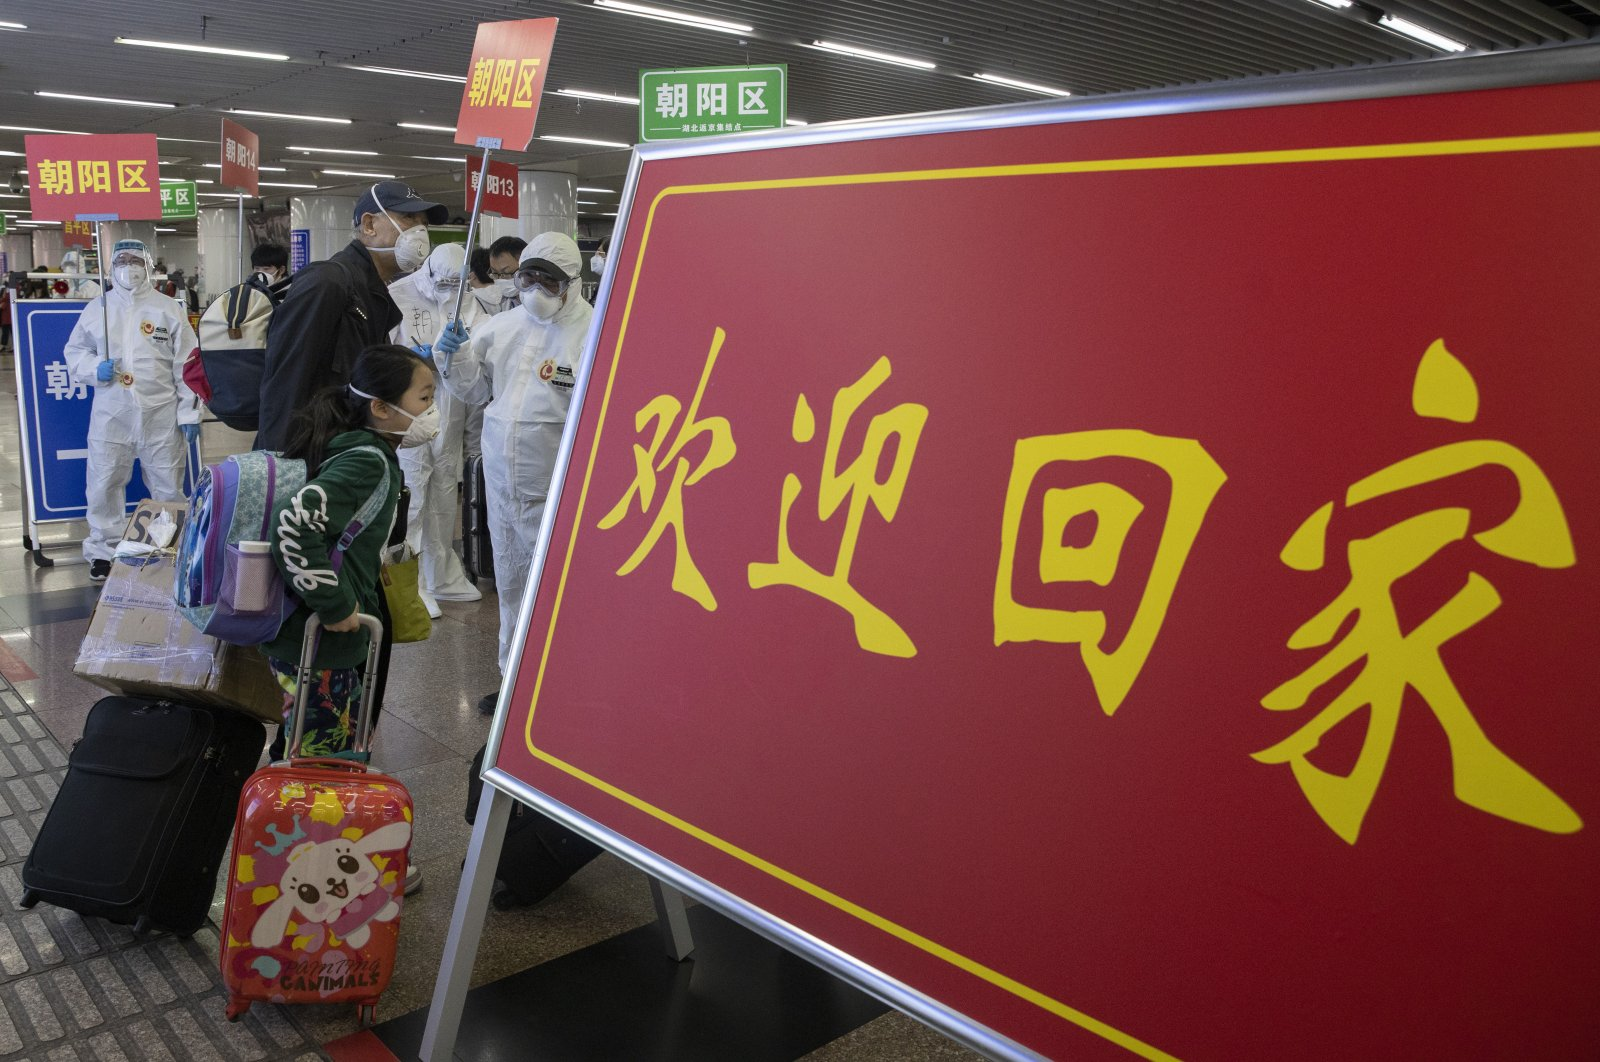 """Passengers from Wuhan walk past a sign which reads """"Welcome Home"""" after arriving on a high-speed train in Beijing, China, April 19, 2020. (AP Photo)"""